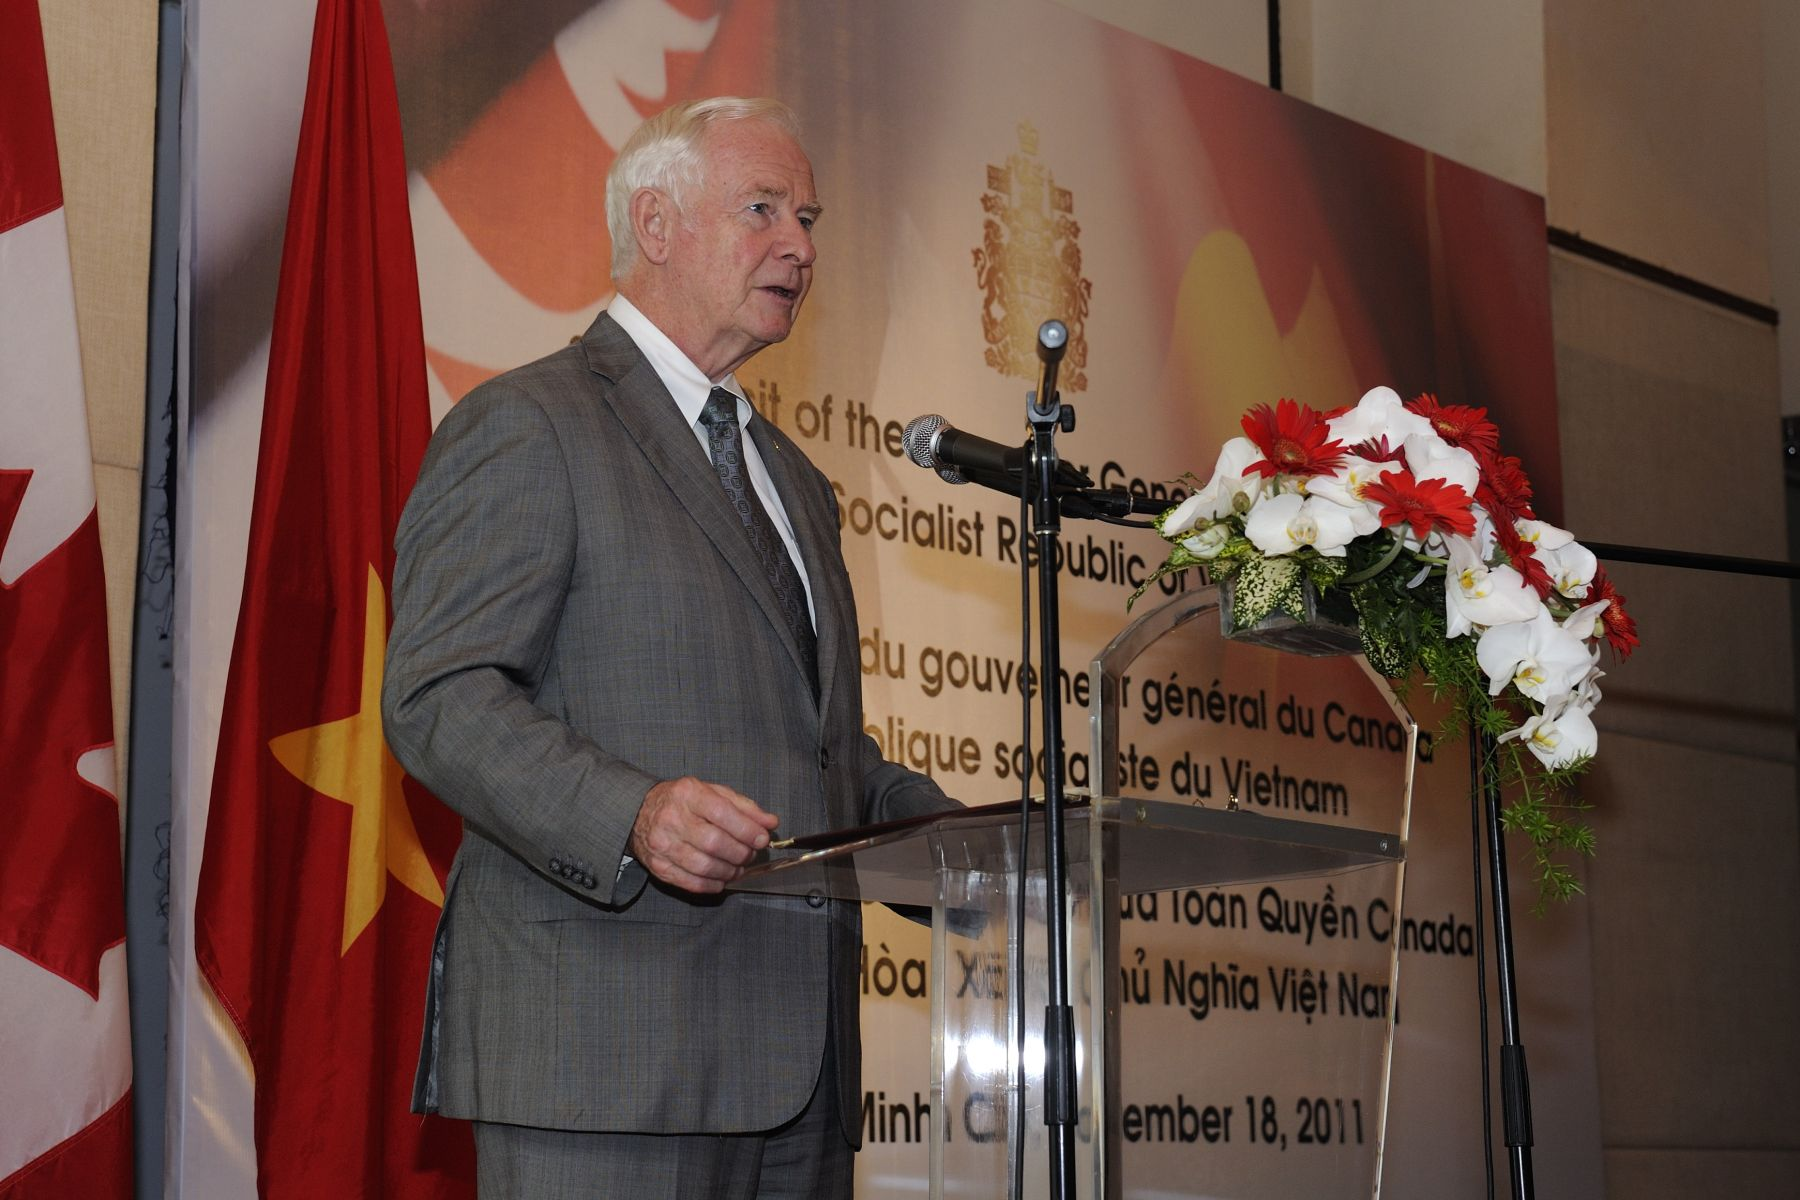 His Excellency and Canadian delegates interacted with Canadian educators, business people and volunteers, as well as with Vietnamese-Canadians who have returned to support Vietnam in its effort to become a knowledge-based economy.